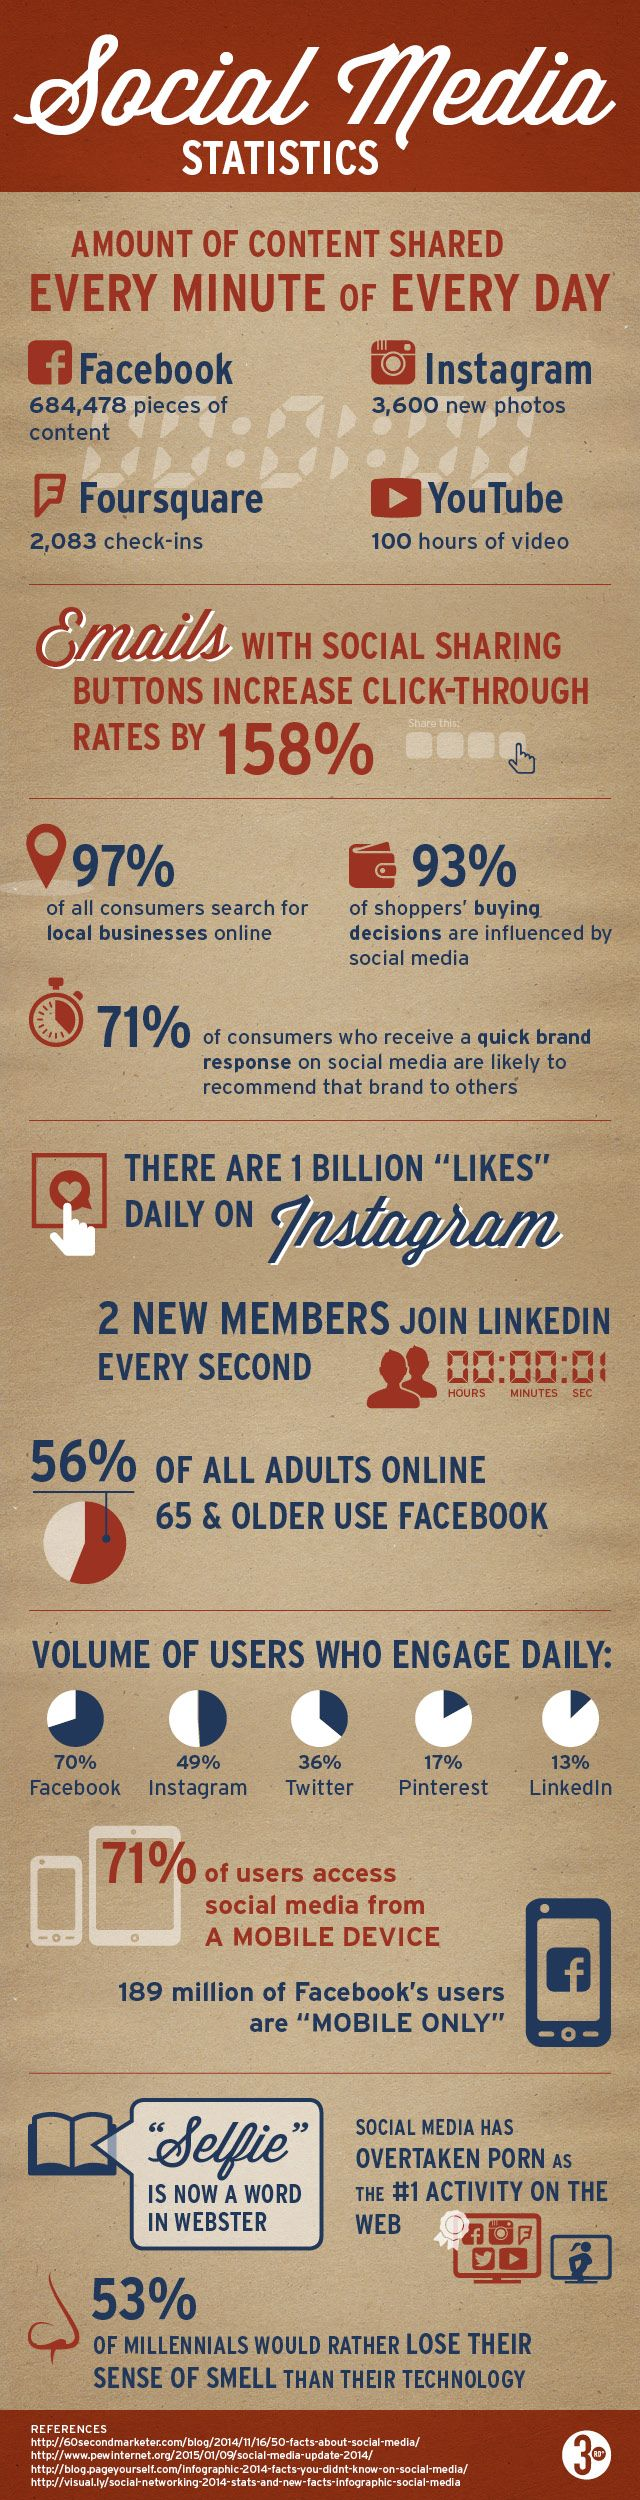 Latest Social Media Statistics #infographic